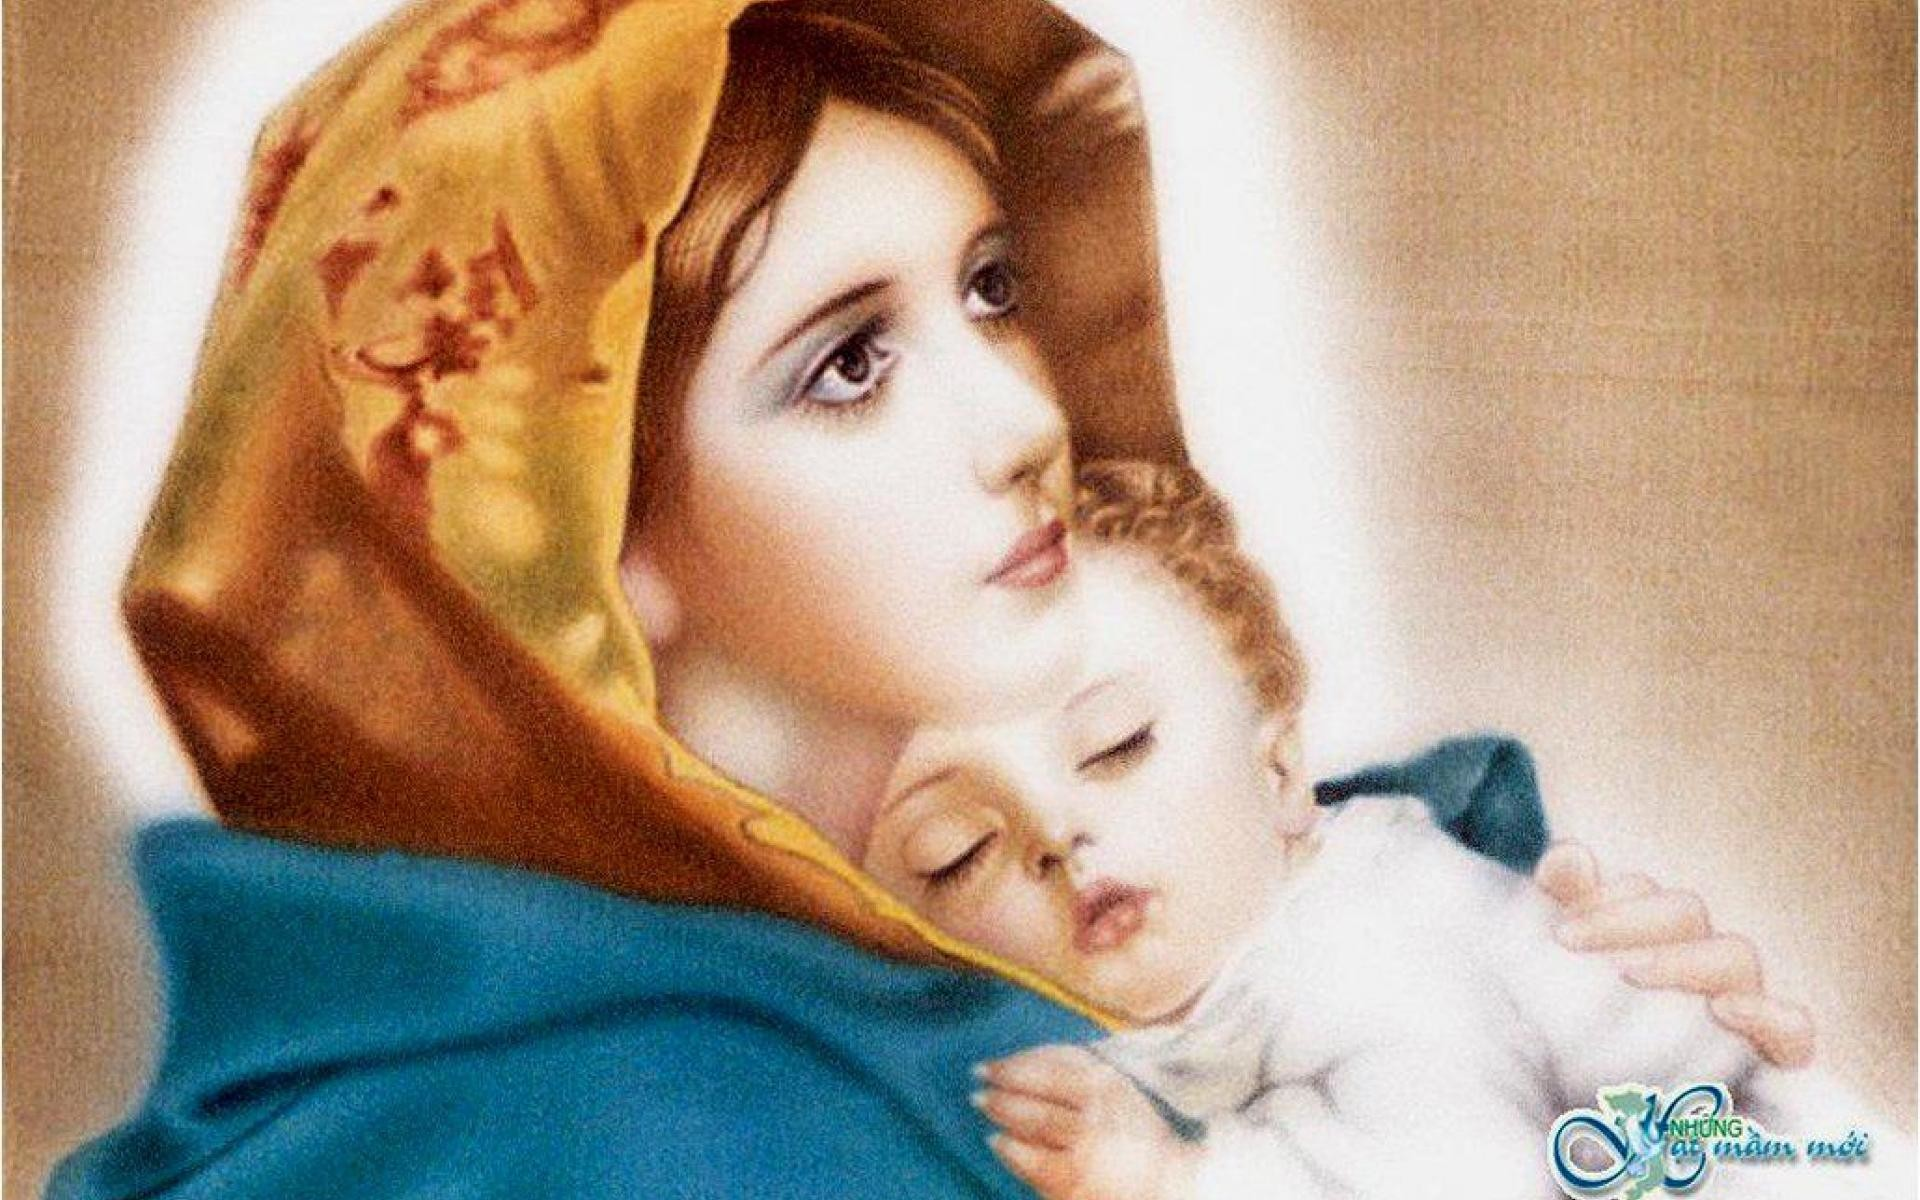 Infant Jesus Hd Wallpapers Mother Mary With Baby Jesus Wallpaper 34 Images